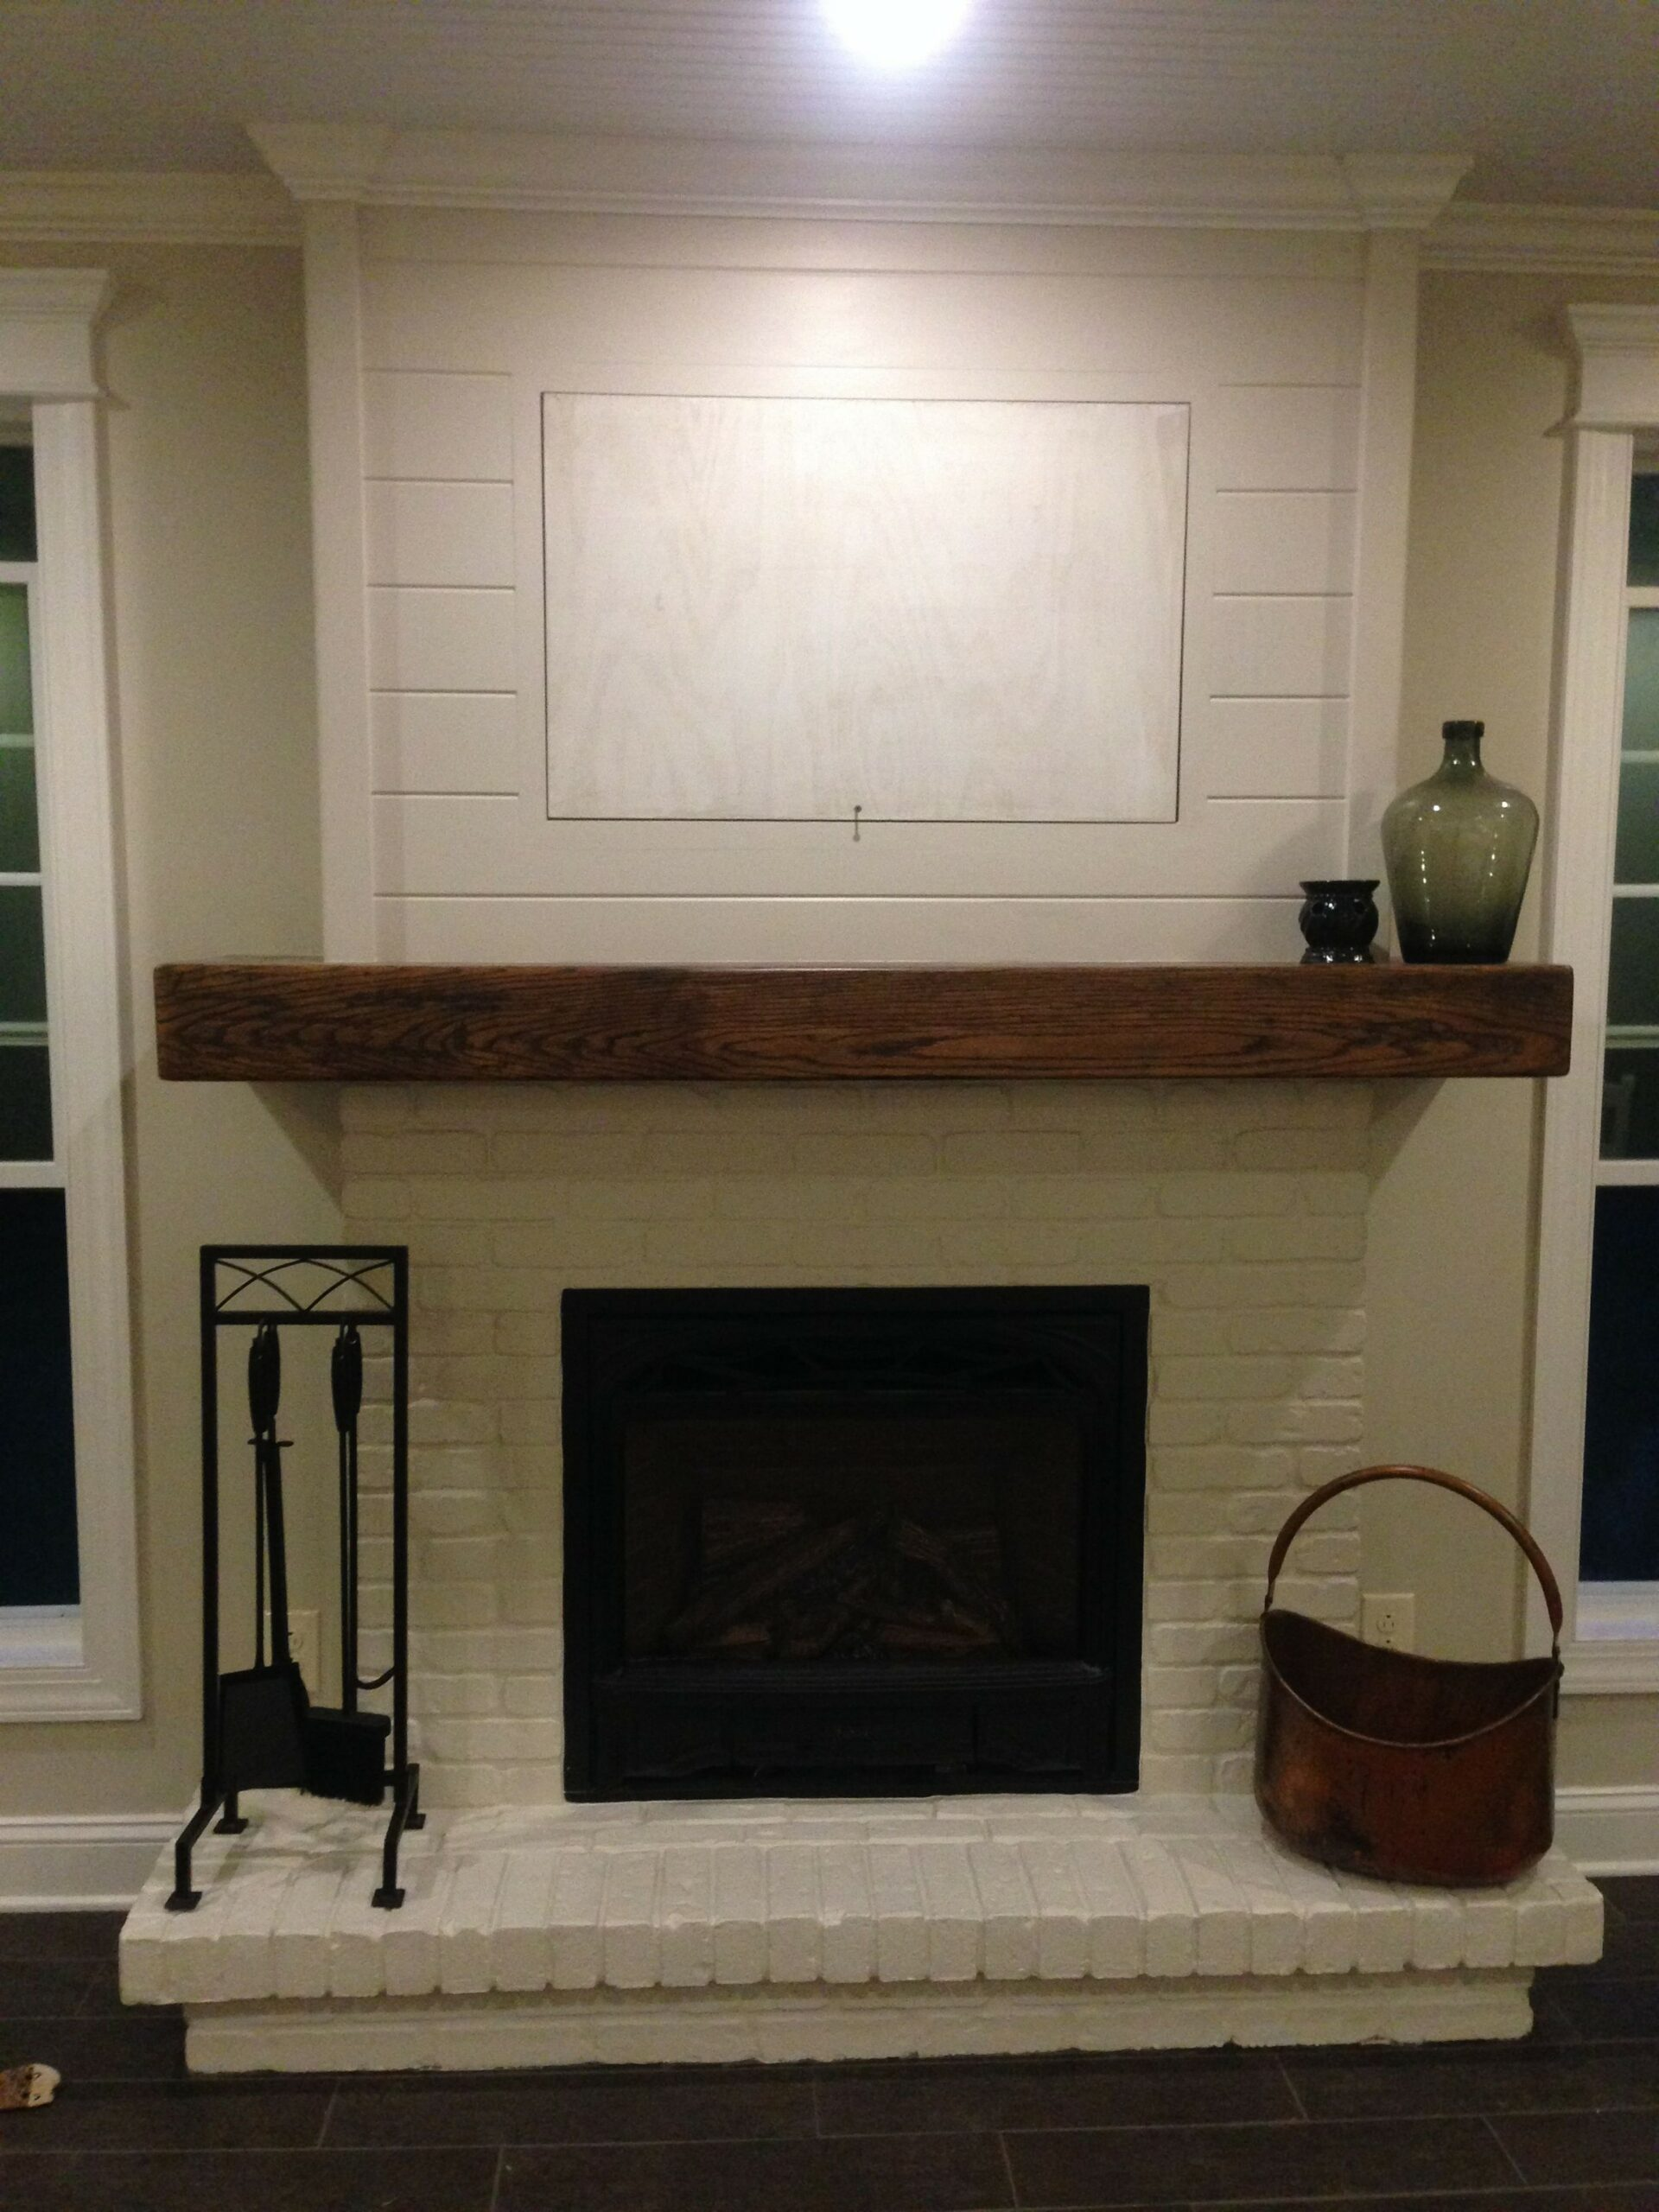 76 Stone Fireplaces The Hearth Is The Heart of The Home 34